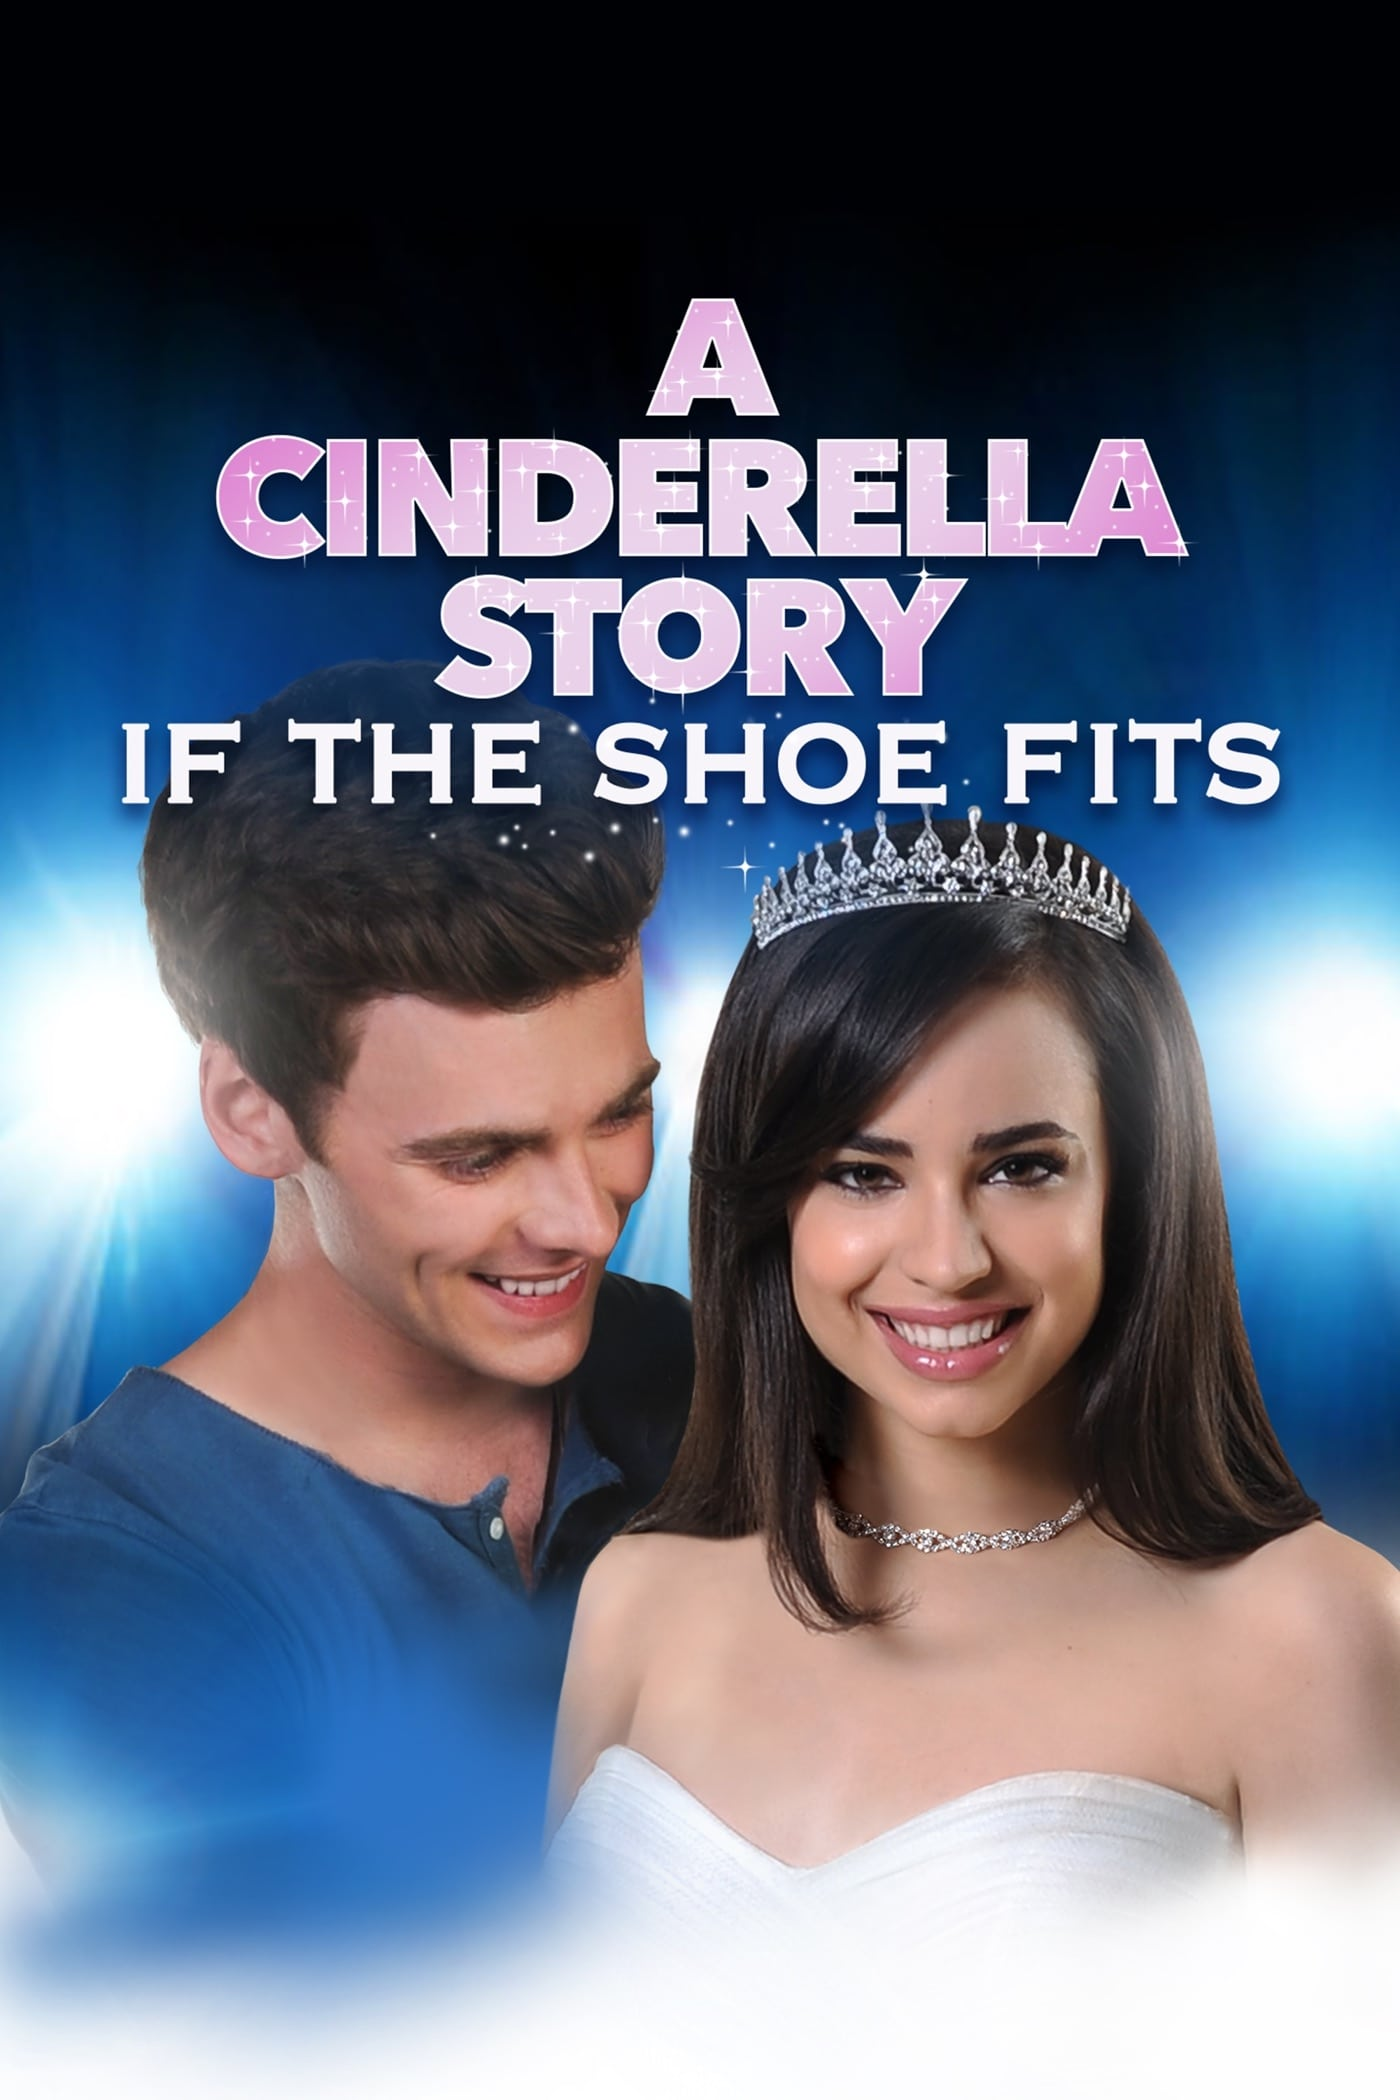 download or watch A Cinderella Story If the Shoe Fits full movie online free Openload